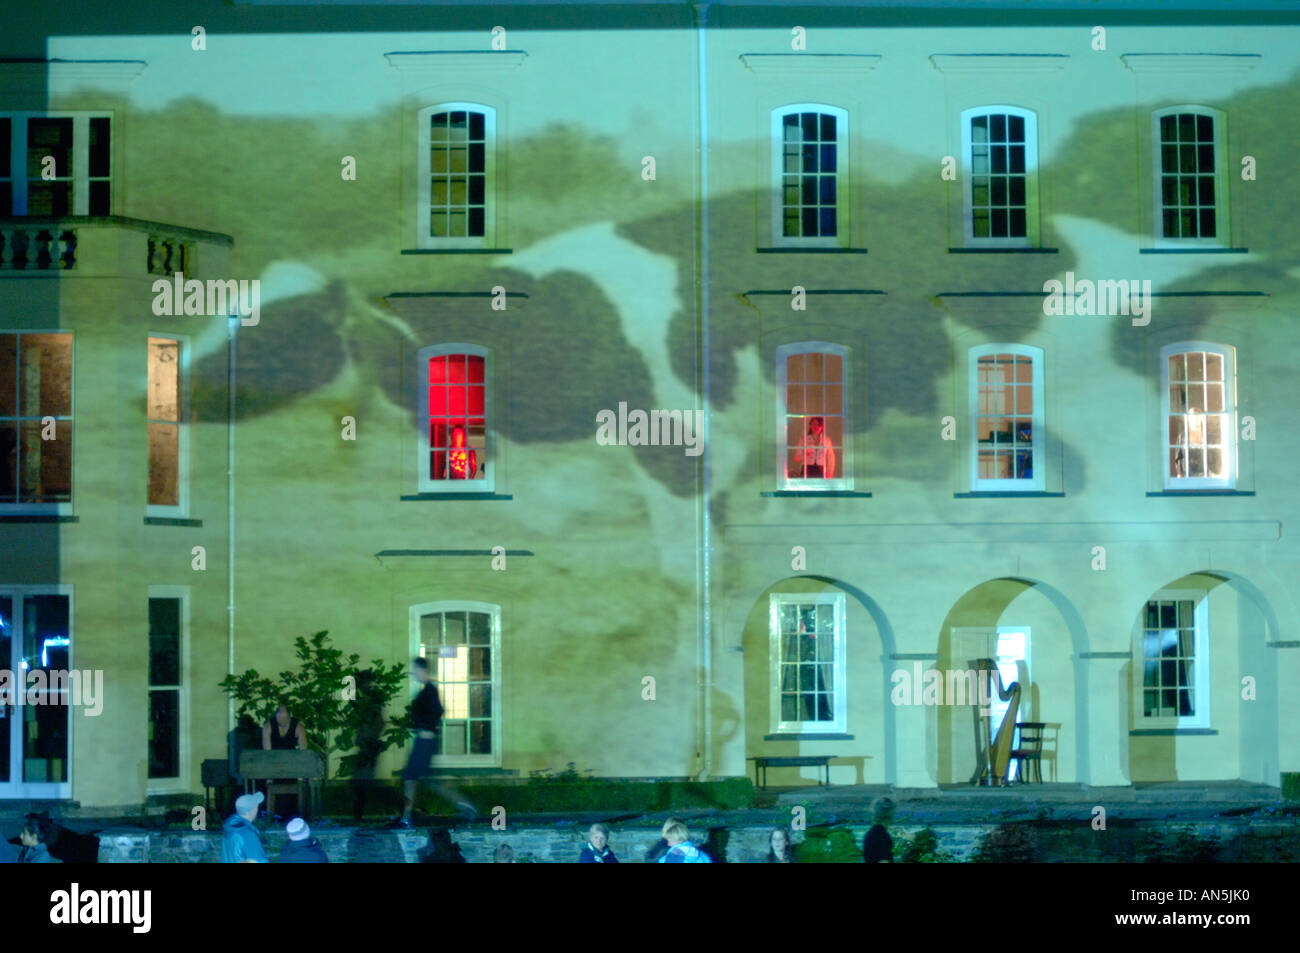 Young actors performing at Aberglasney Gardens Llandeilo Carmarthenshire Wales UK - video projection on the facade of the house - Stock Image